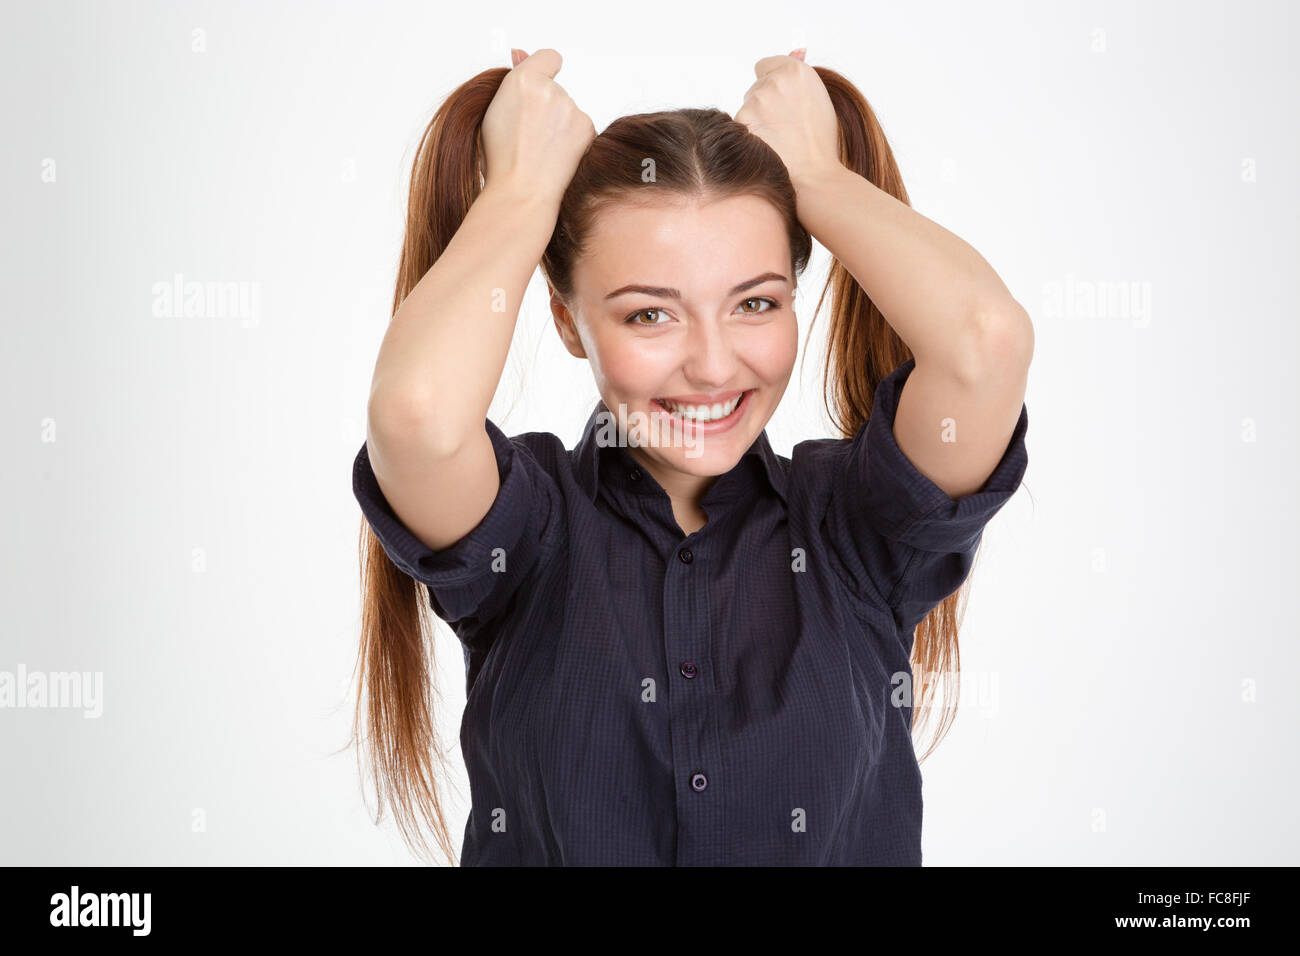 Cheerful beautiful young woman making two ponytails by hands over white background - Stock Image